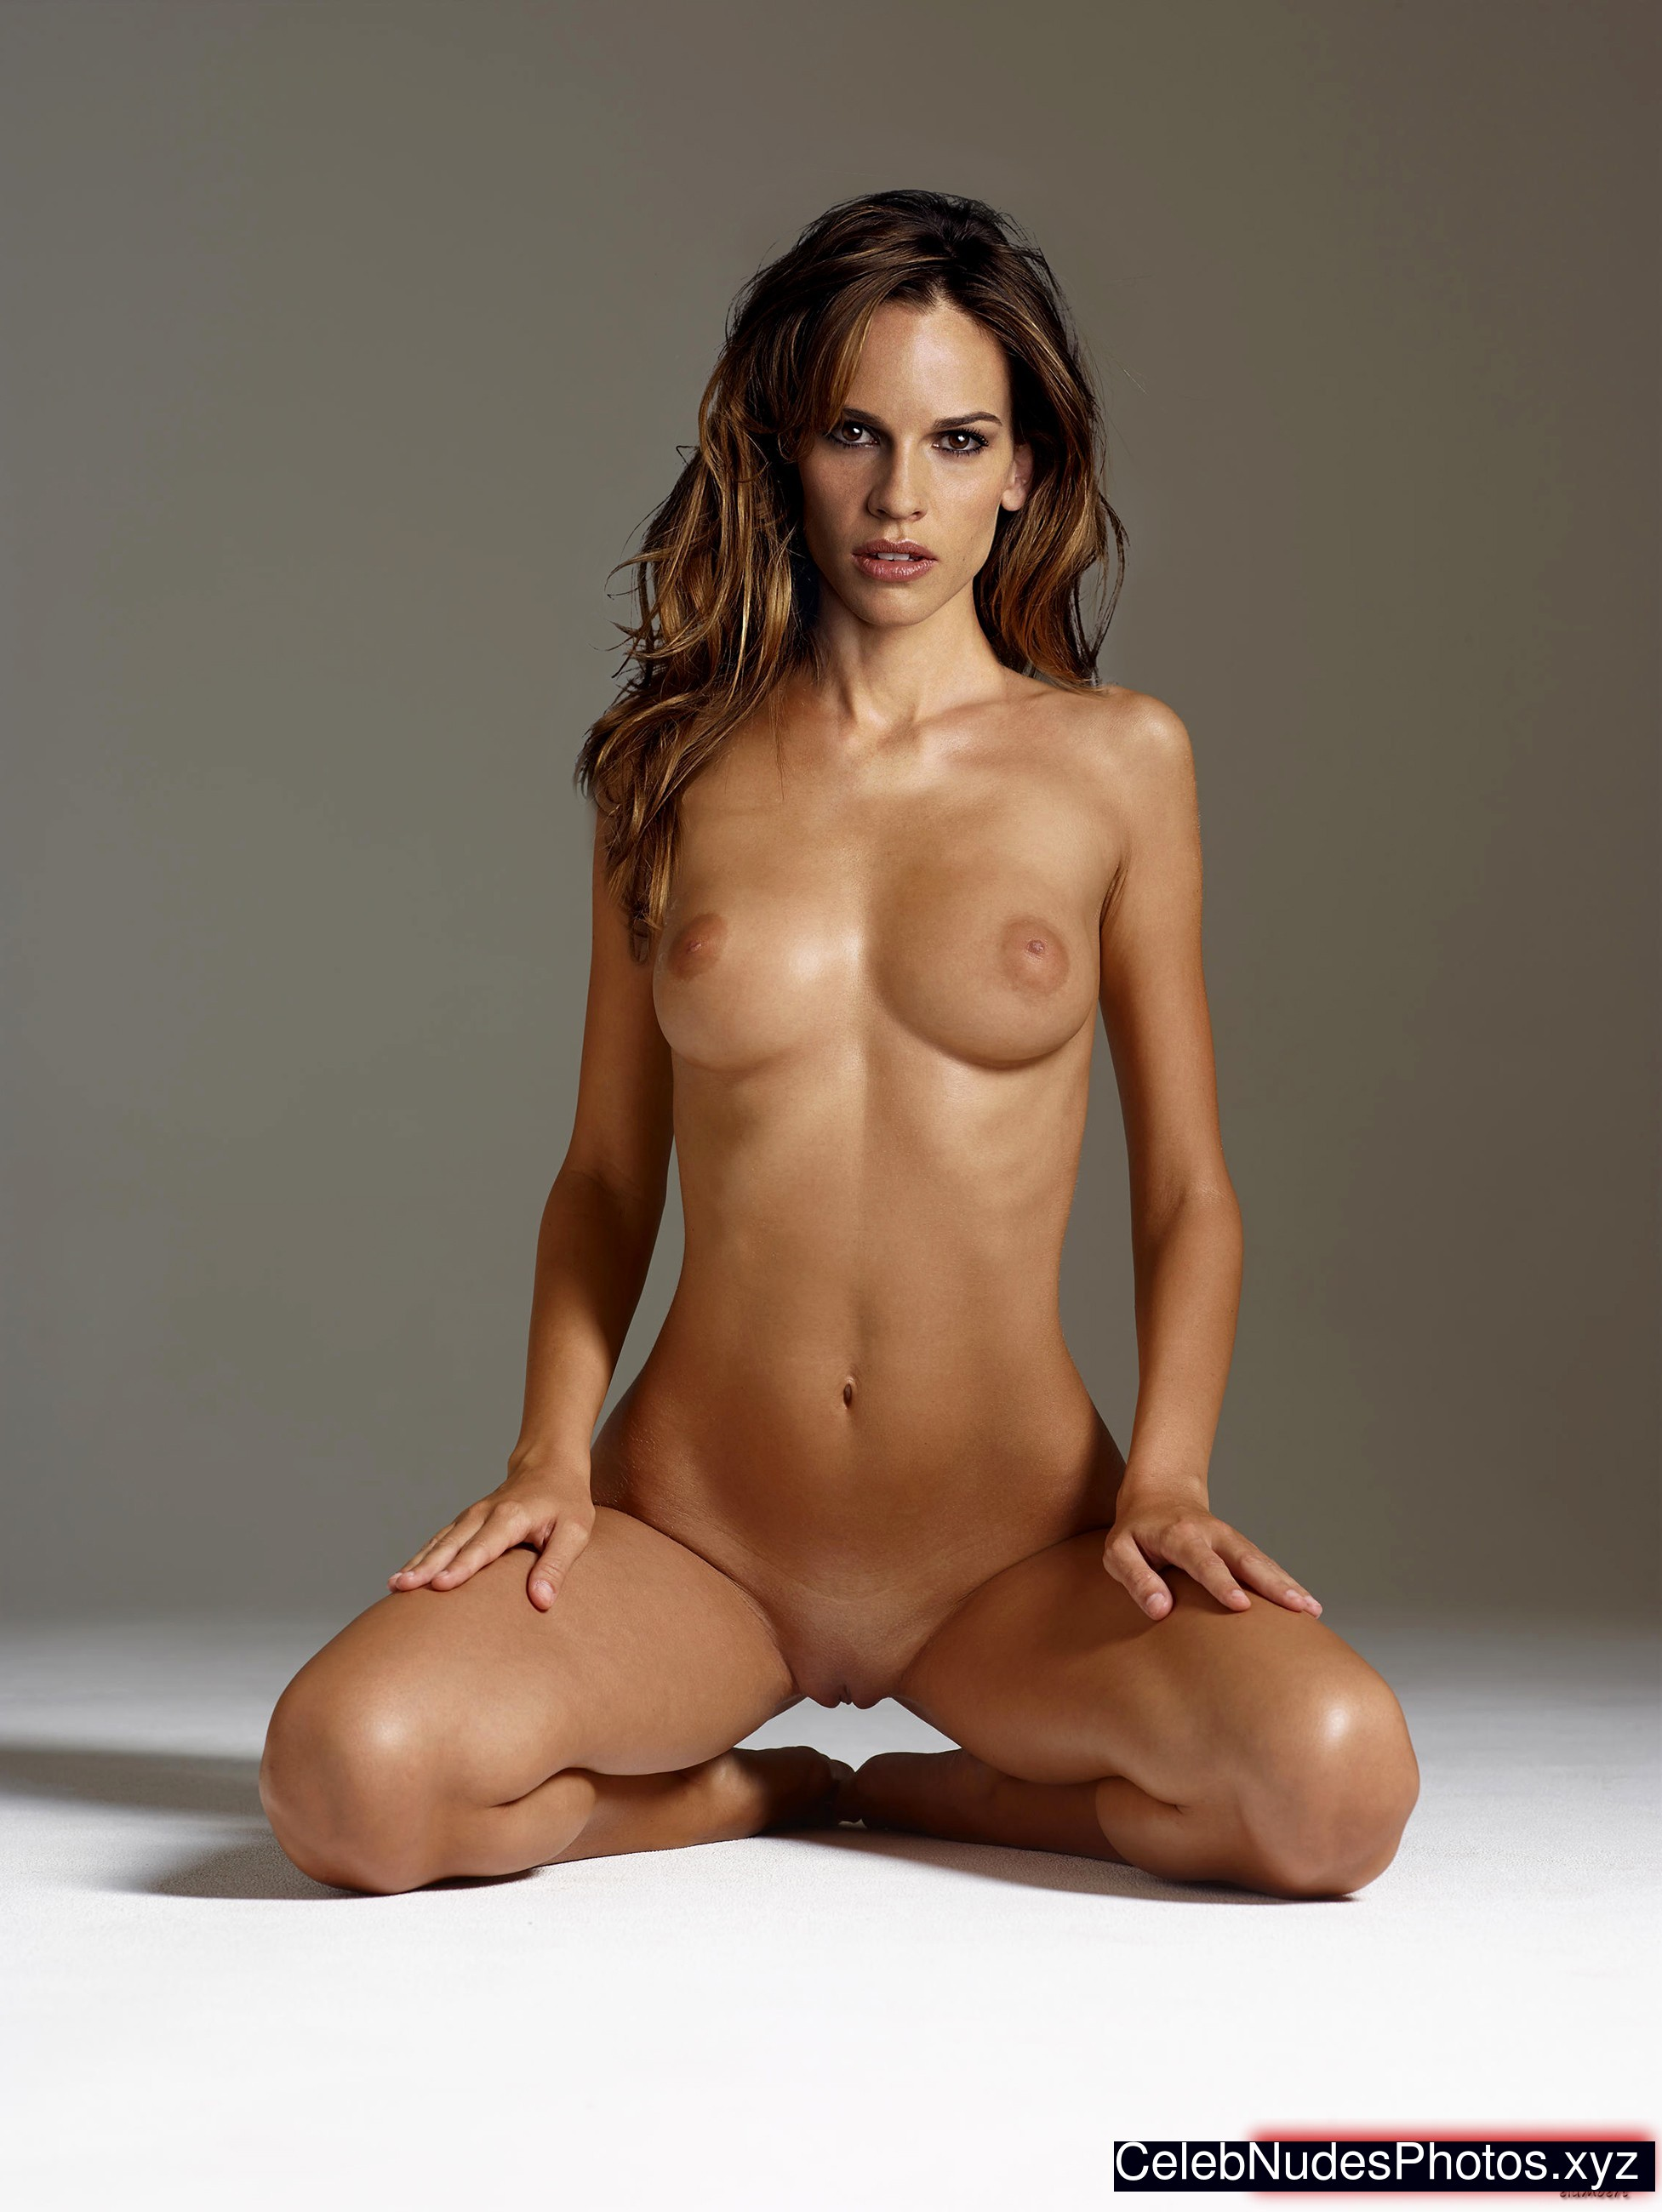 Speaking, hilary swank nude fakes phrase